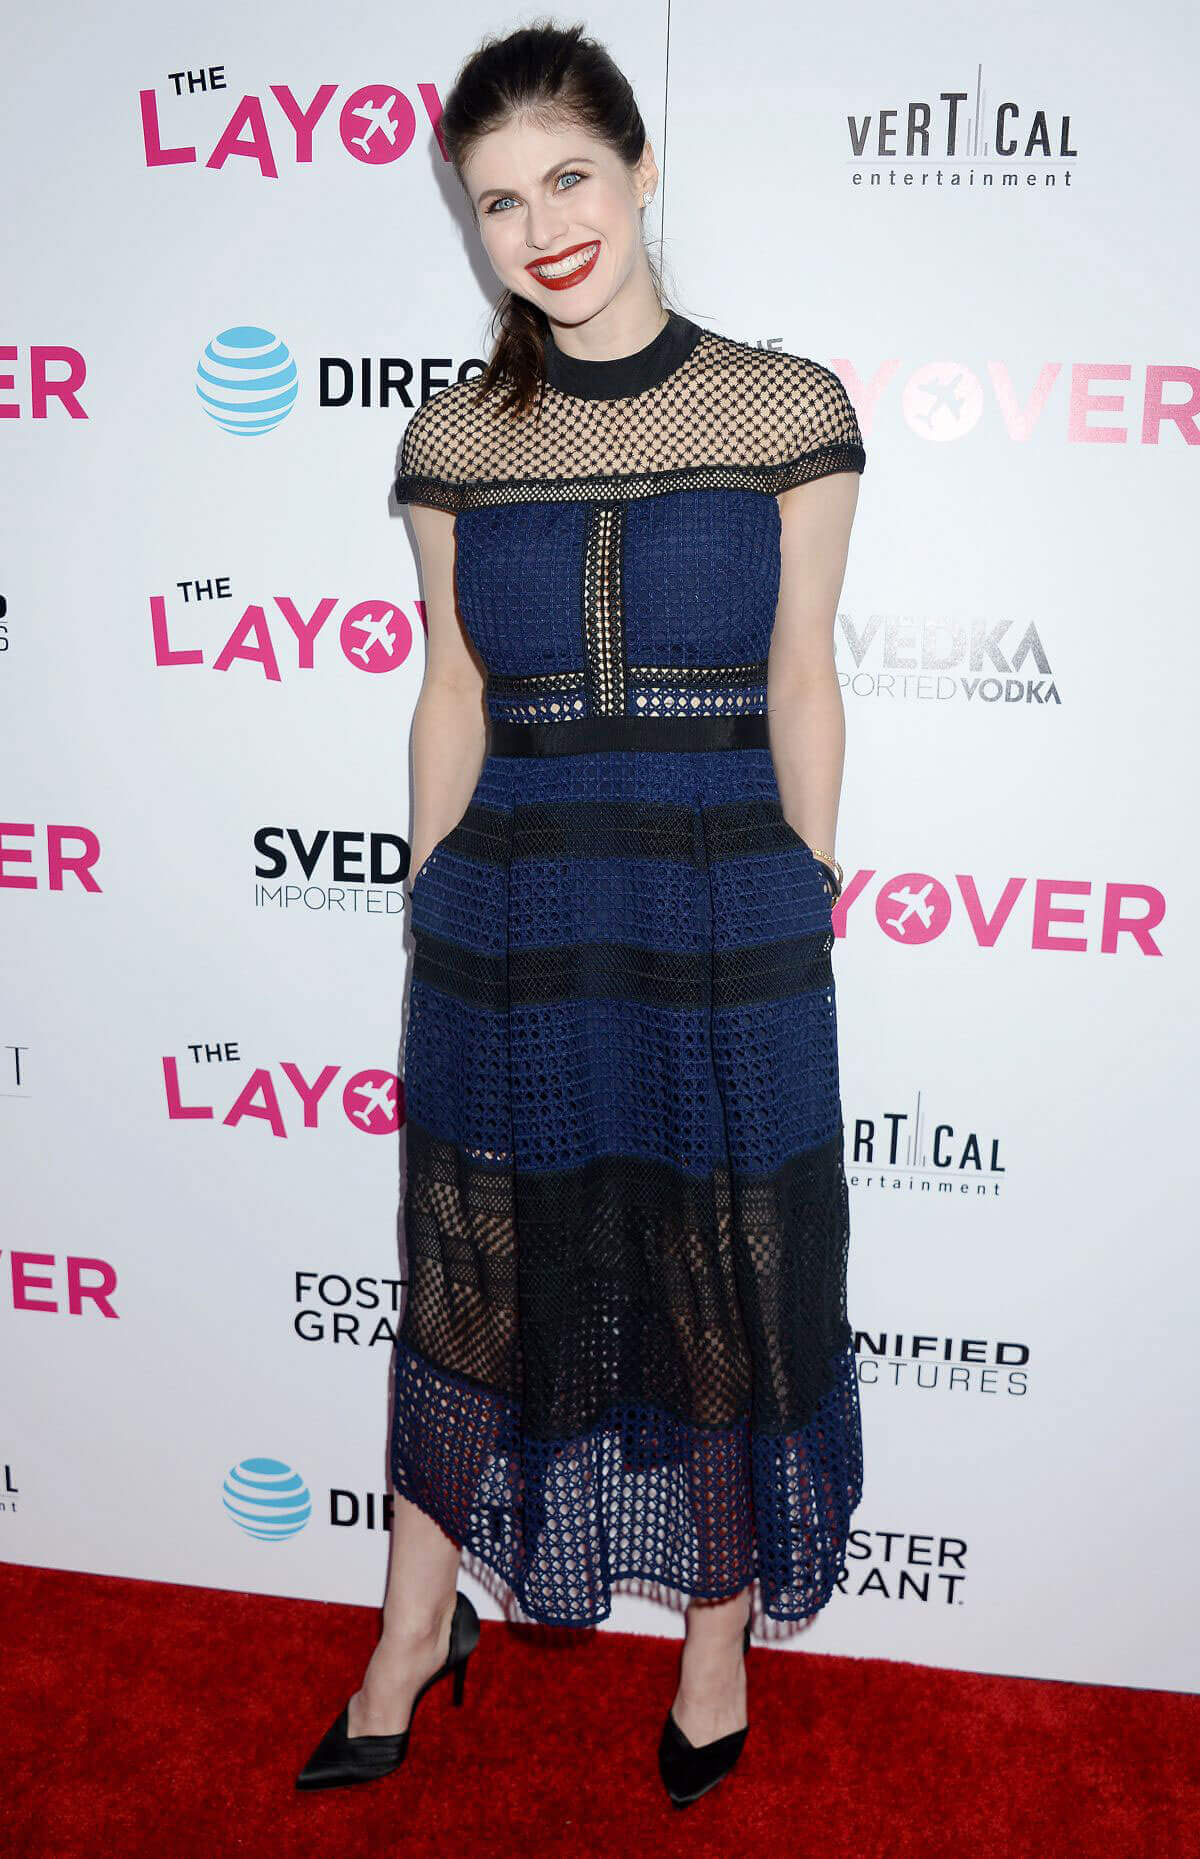 Alexandra Daddario Stills at The Layover Premiere in Los Angeles